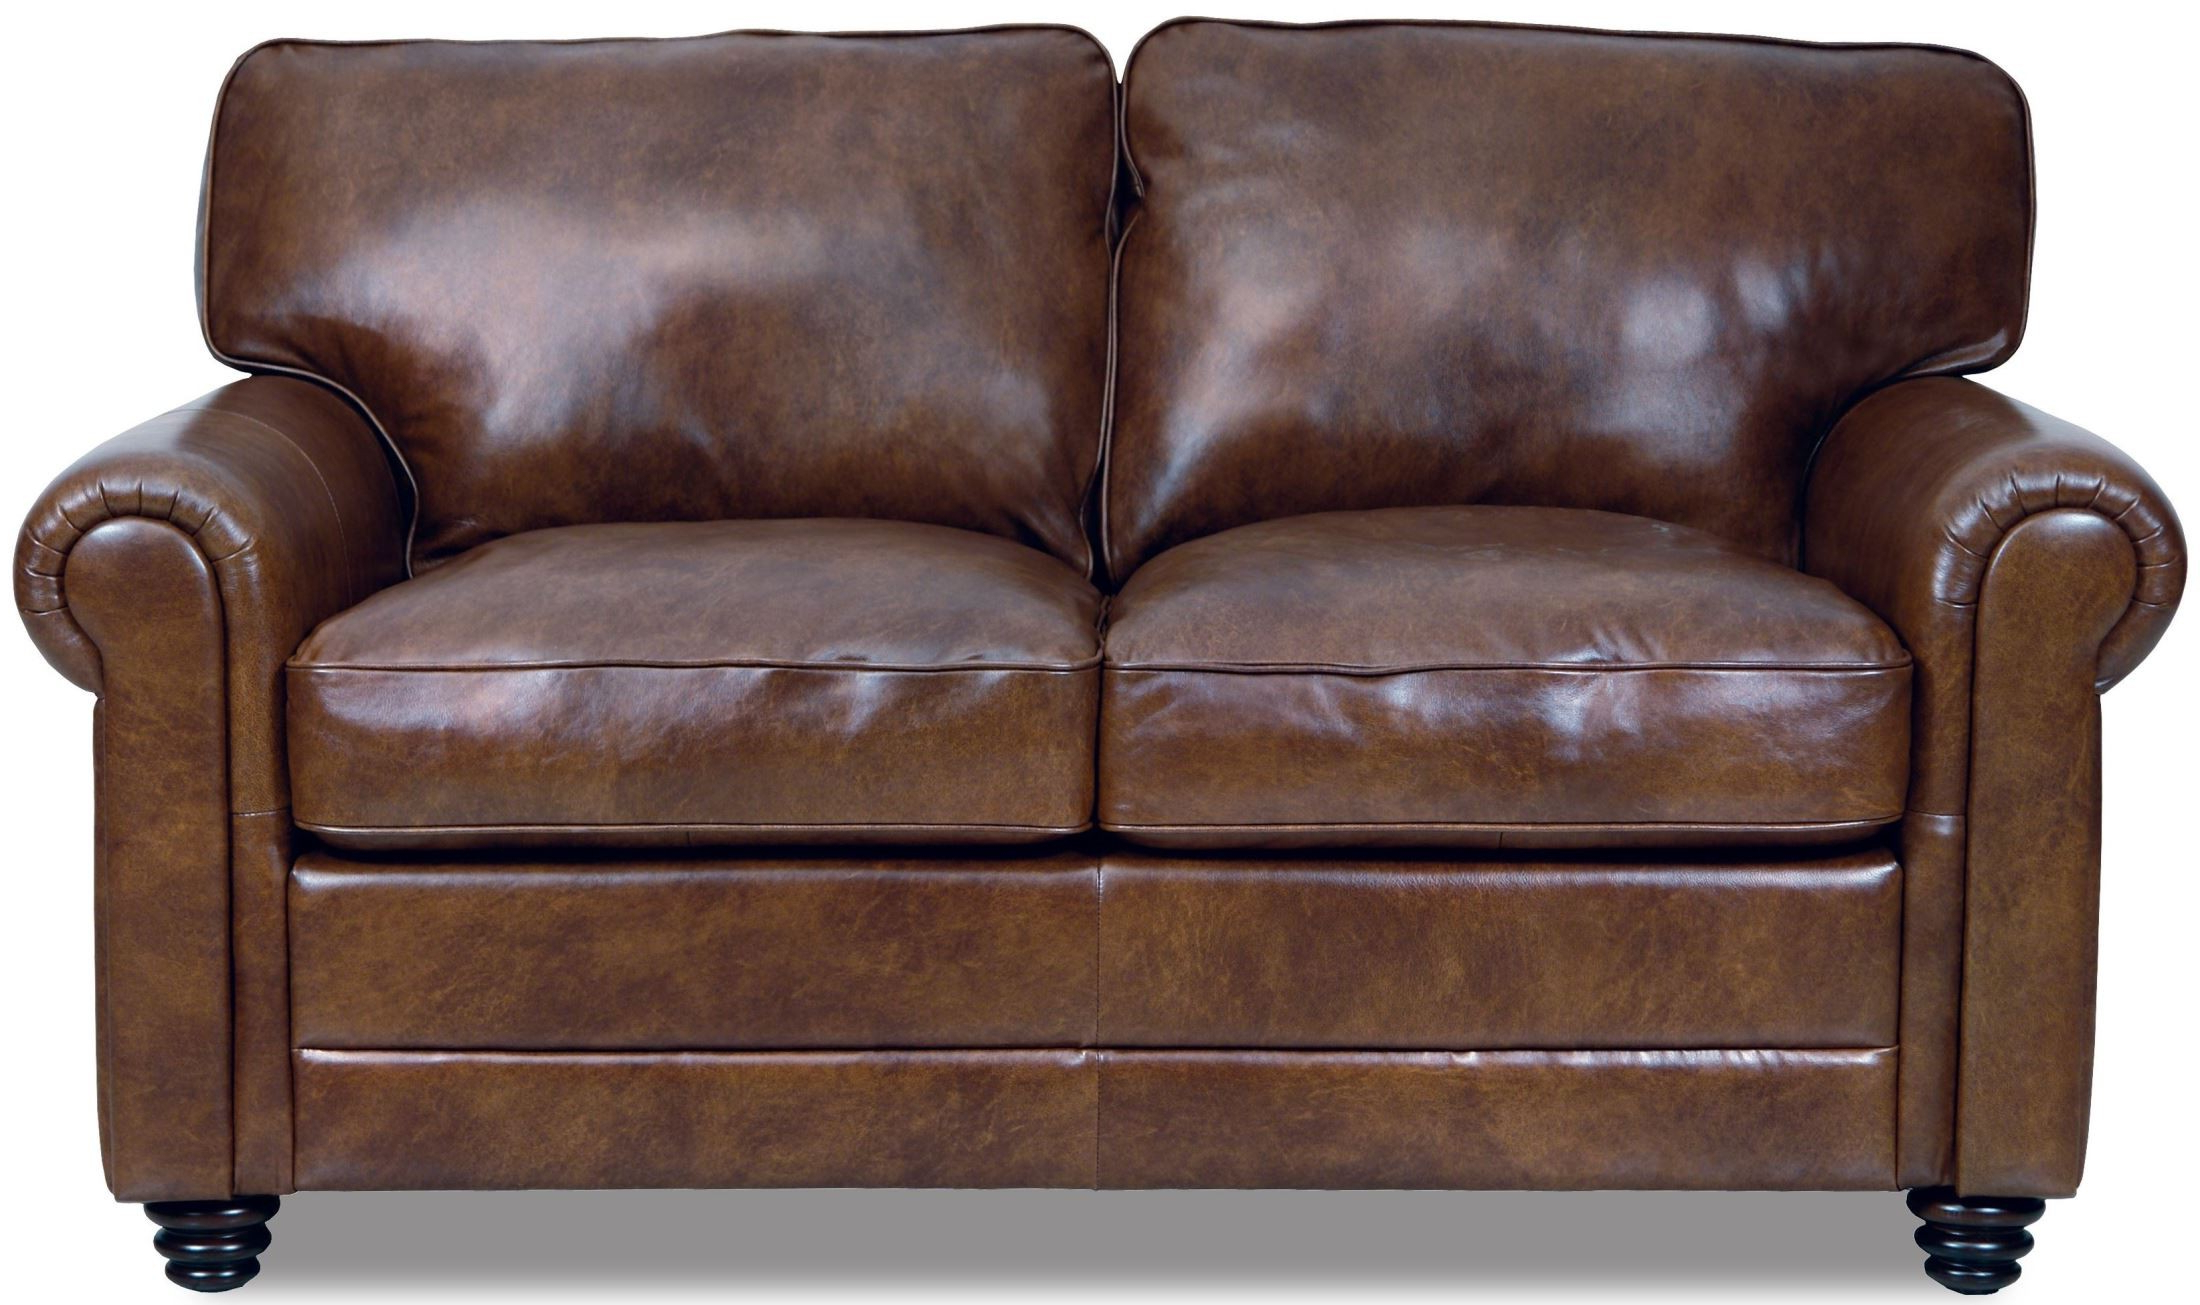 Andrew Leather Sofa Chairs Inside Most Up To Date Andrew Leather Loveseat From Luke Leather (View 6 of 20)